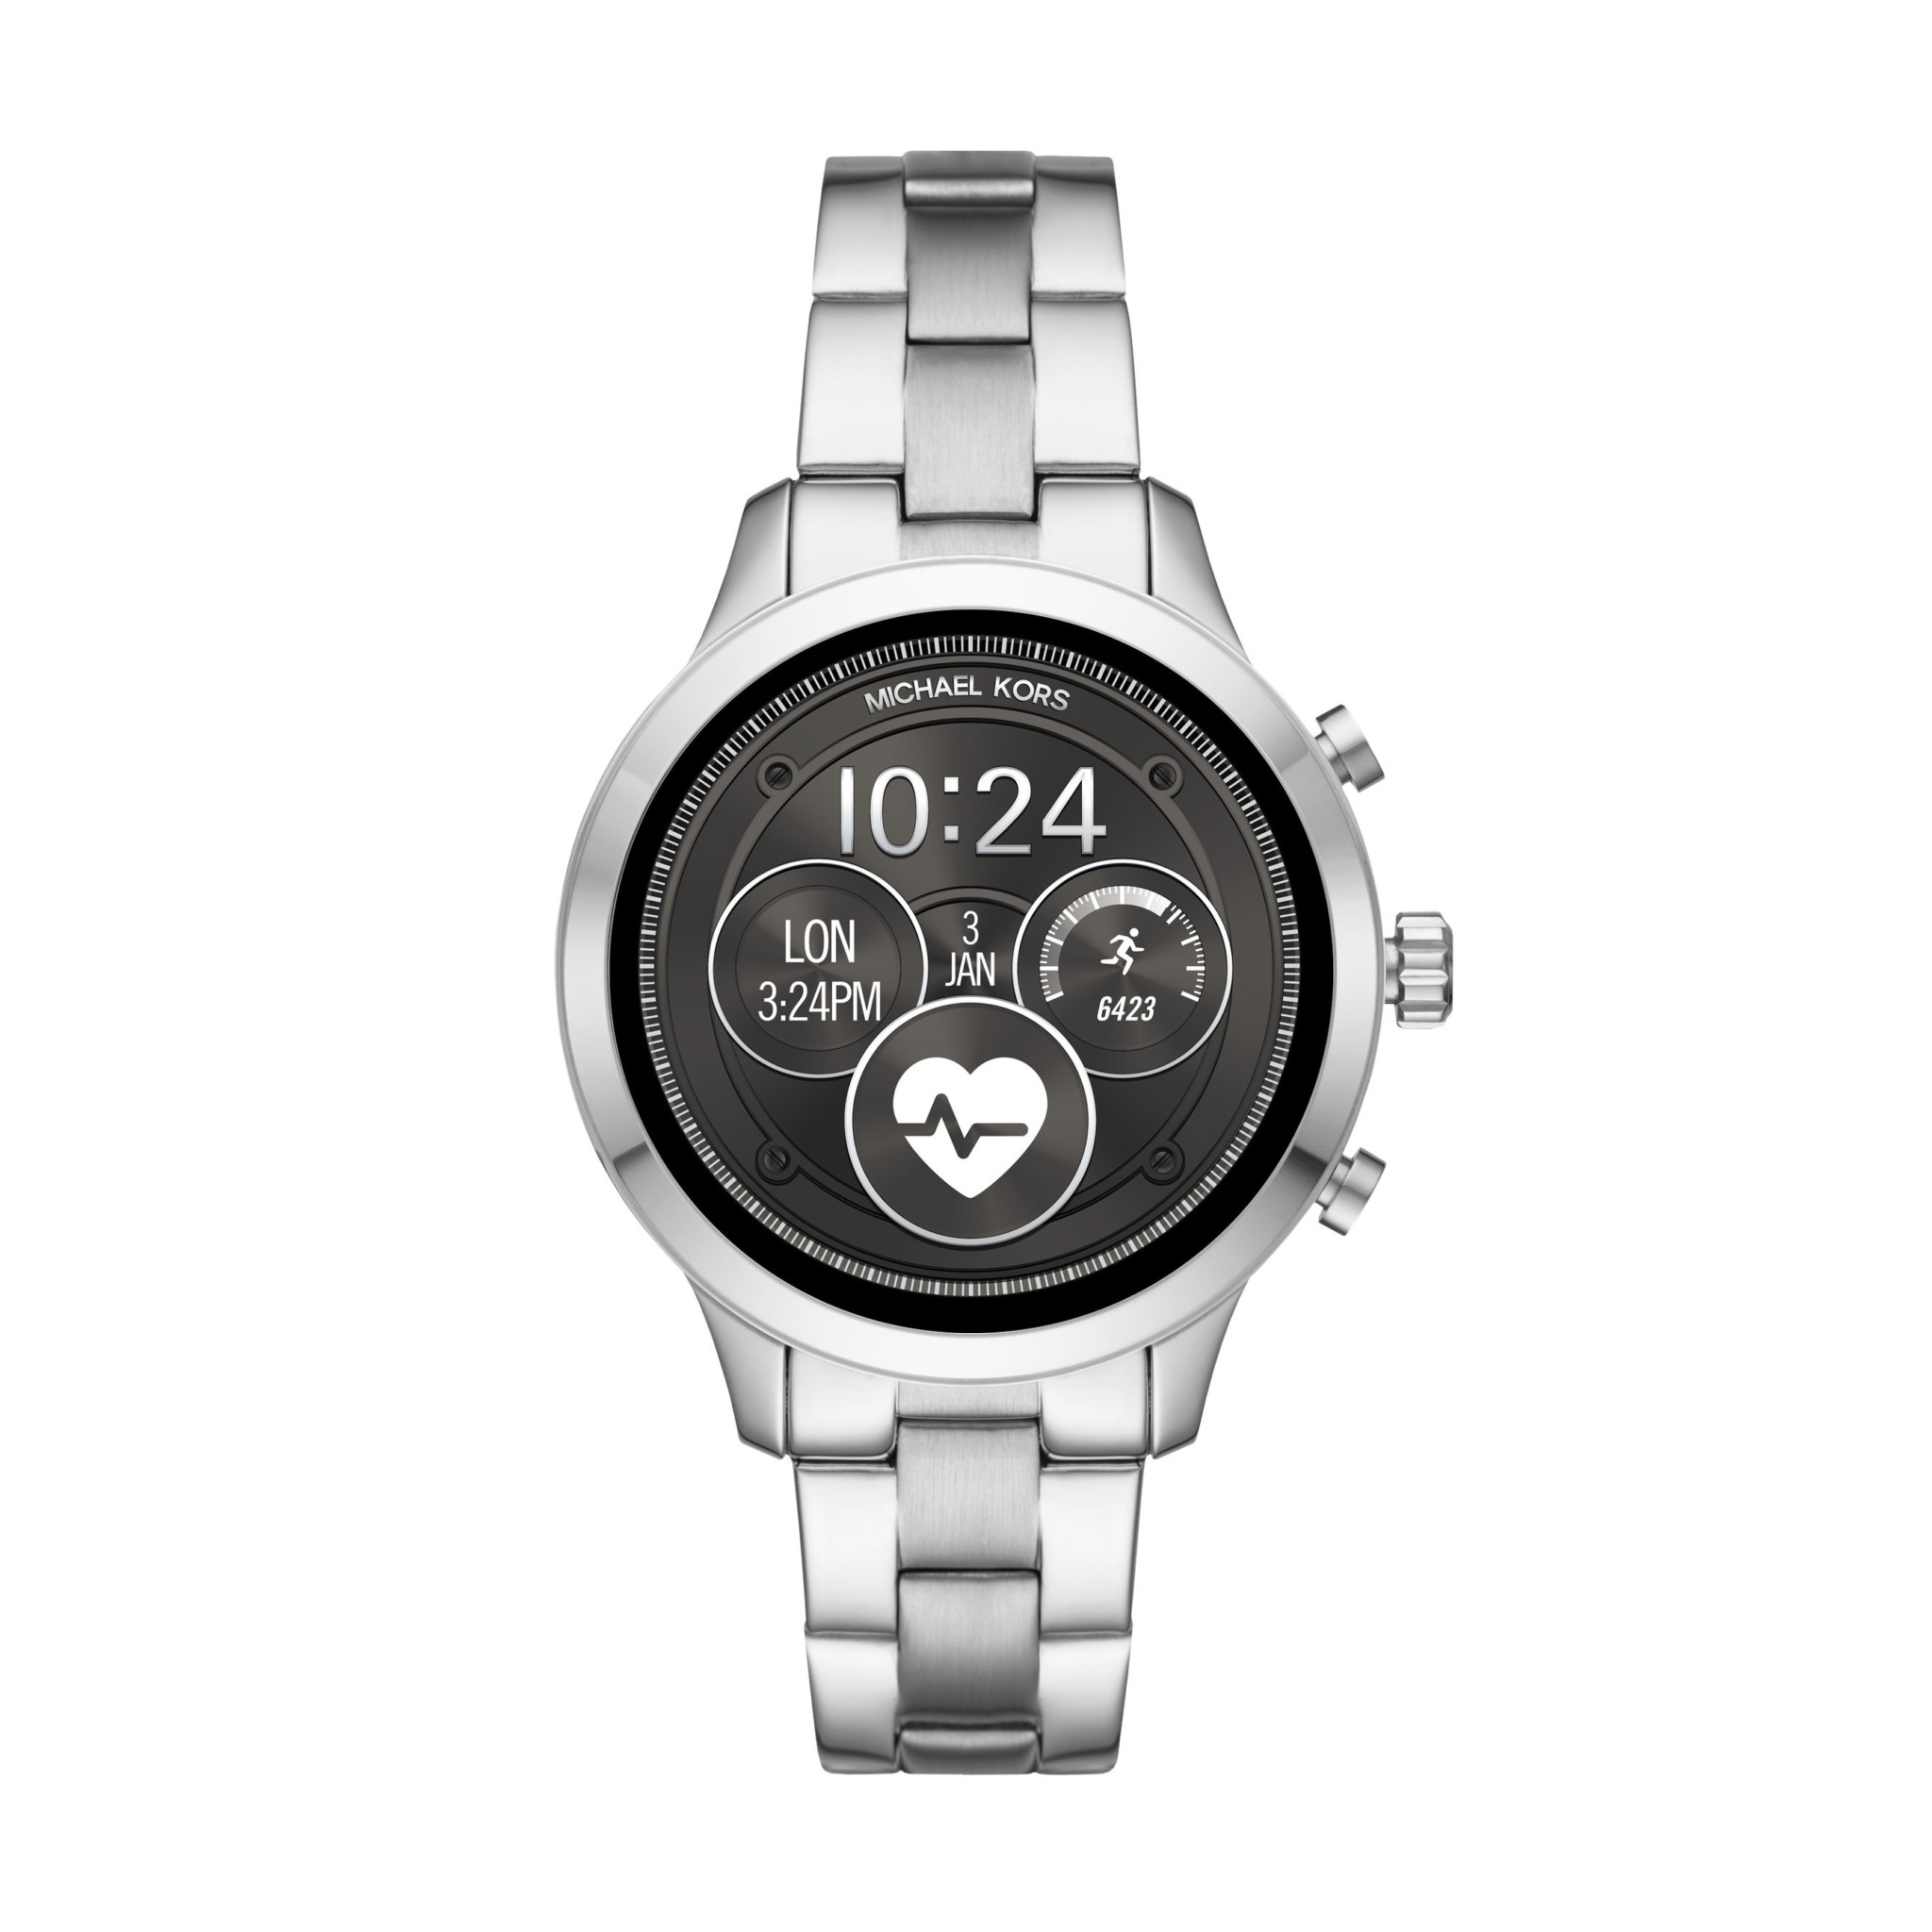 125c91044f0f5 Michael Kors launches the iconic Runway as new smartwatch - WatchPro USA